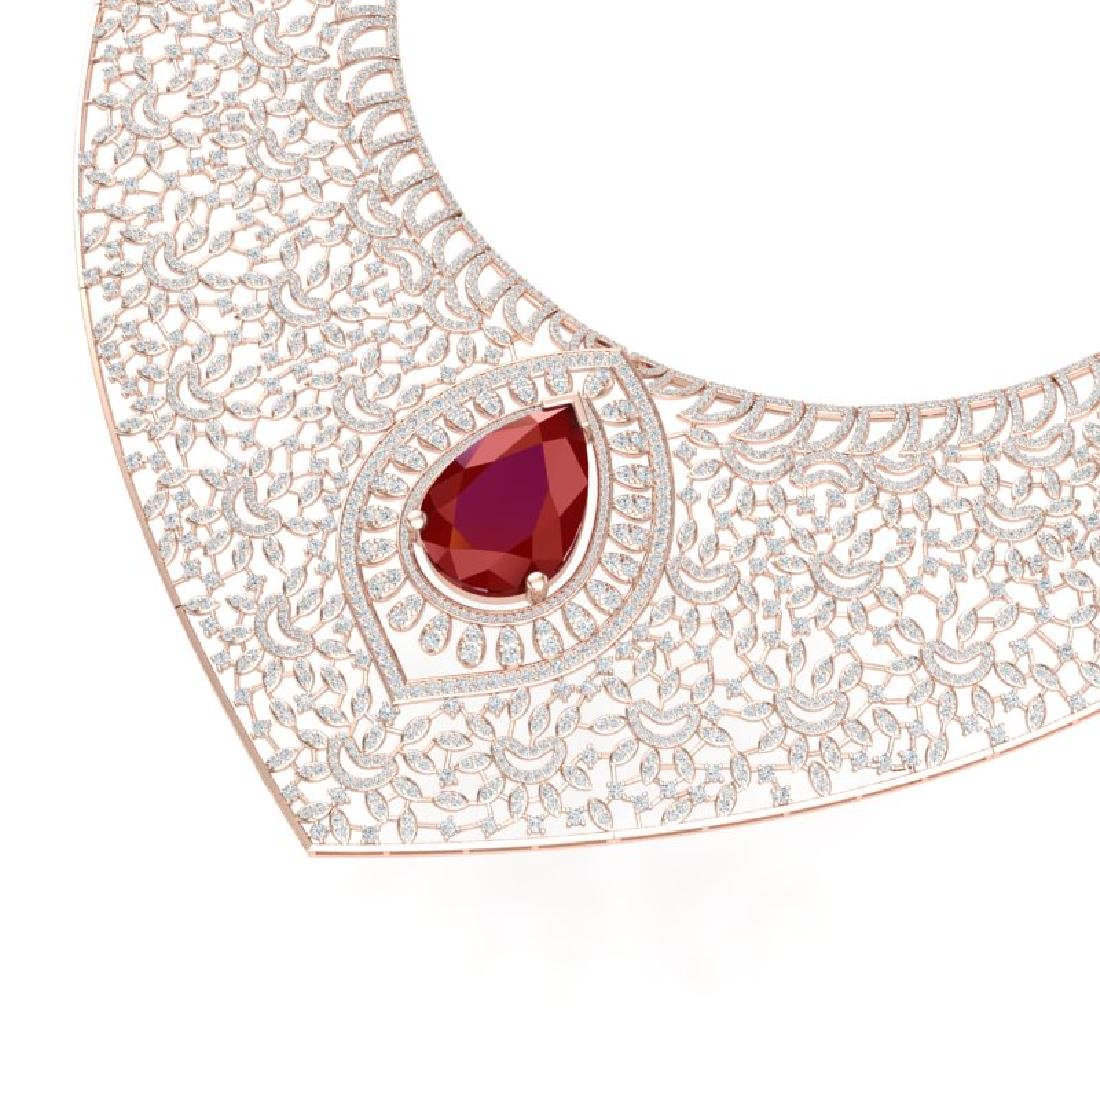 63.93 CTW Royalty Ruby & VS Diamond Necklace 18K Rose